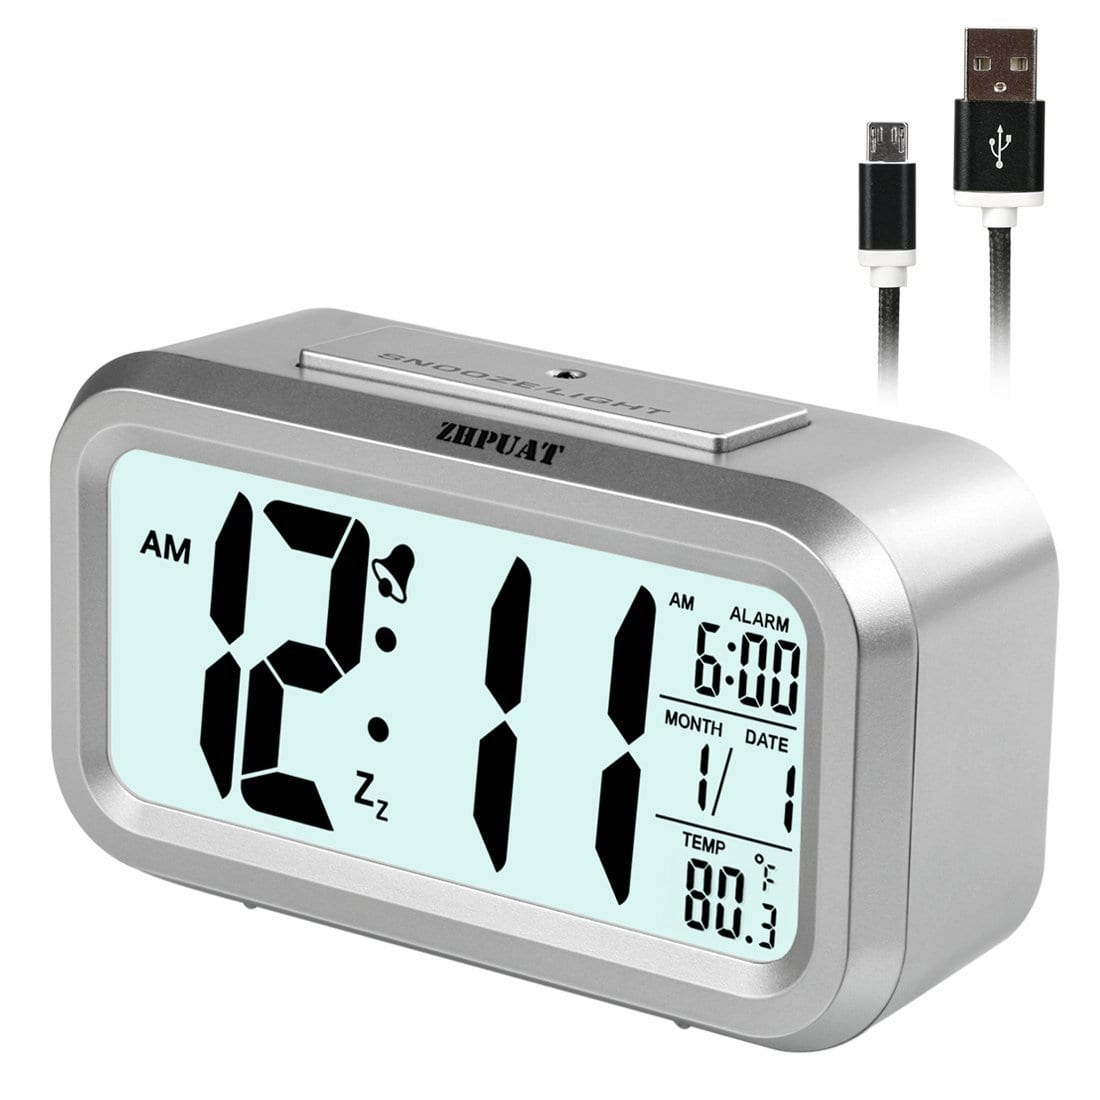 ZHPUAT 4.6-Inch Alarm Clock with Backlight and Dimmer